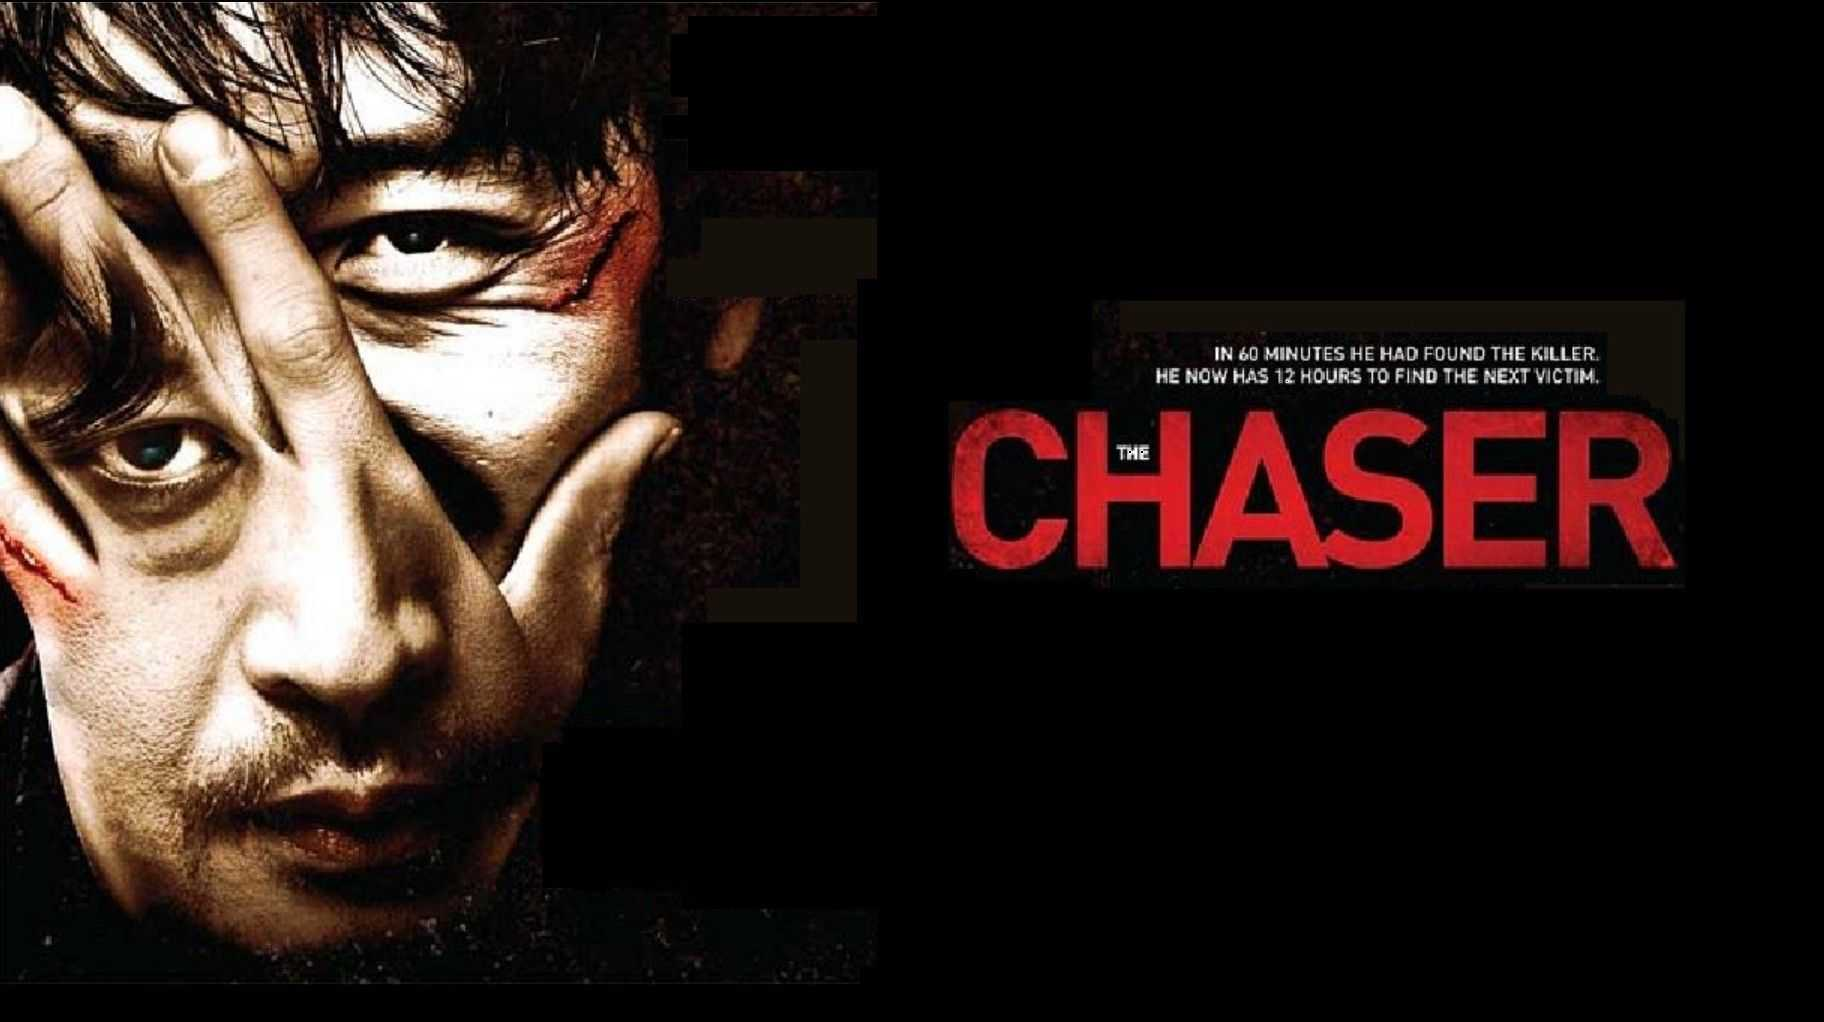 CASO REAL THE CHASER